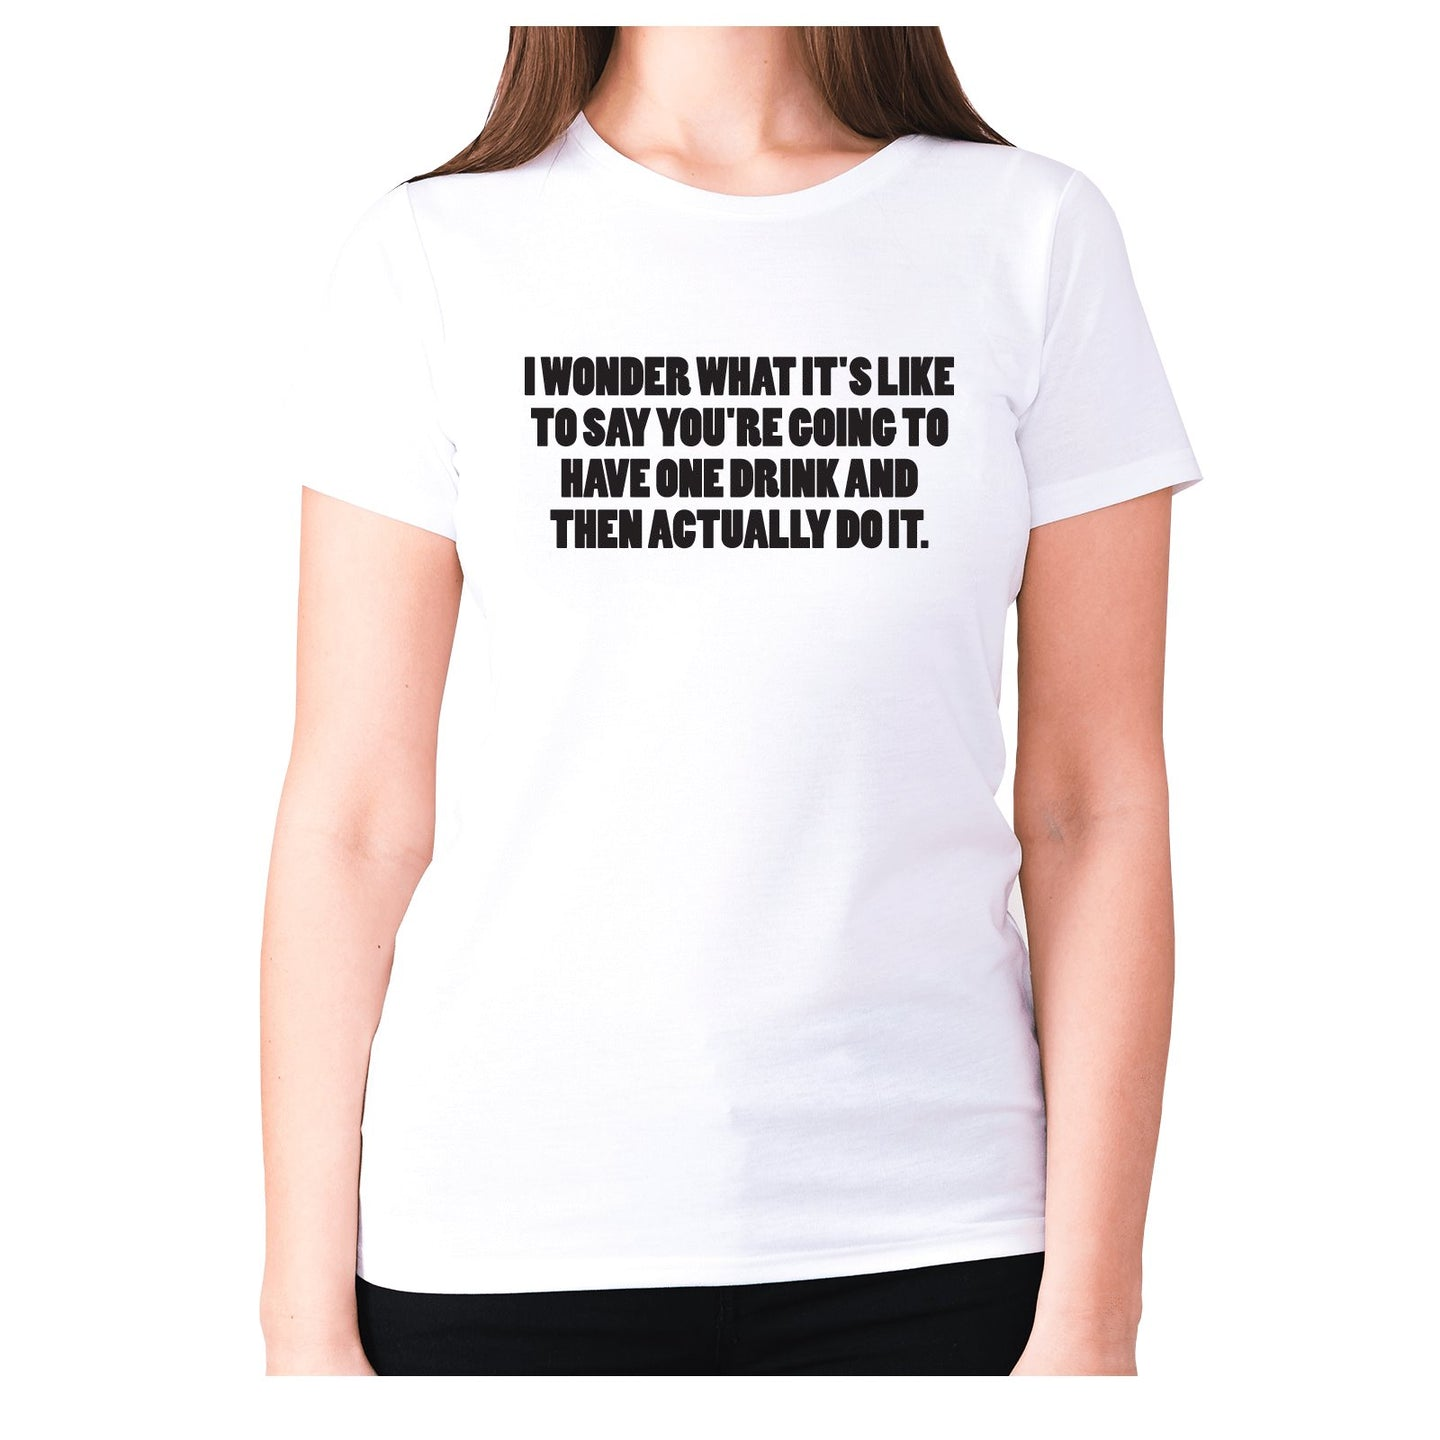 I wonder what it's like to say you're going to have one drink and then actually do it - women's premium t-shirt - White / S - Graphic Gear